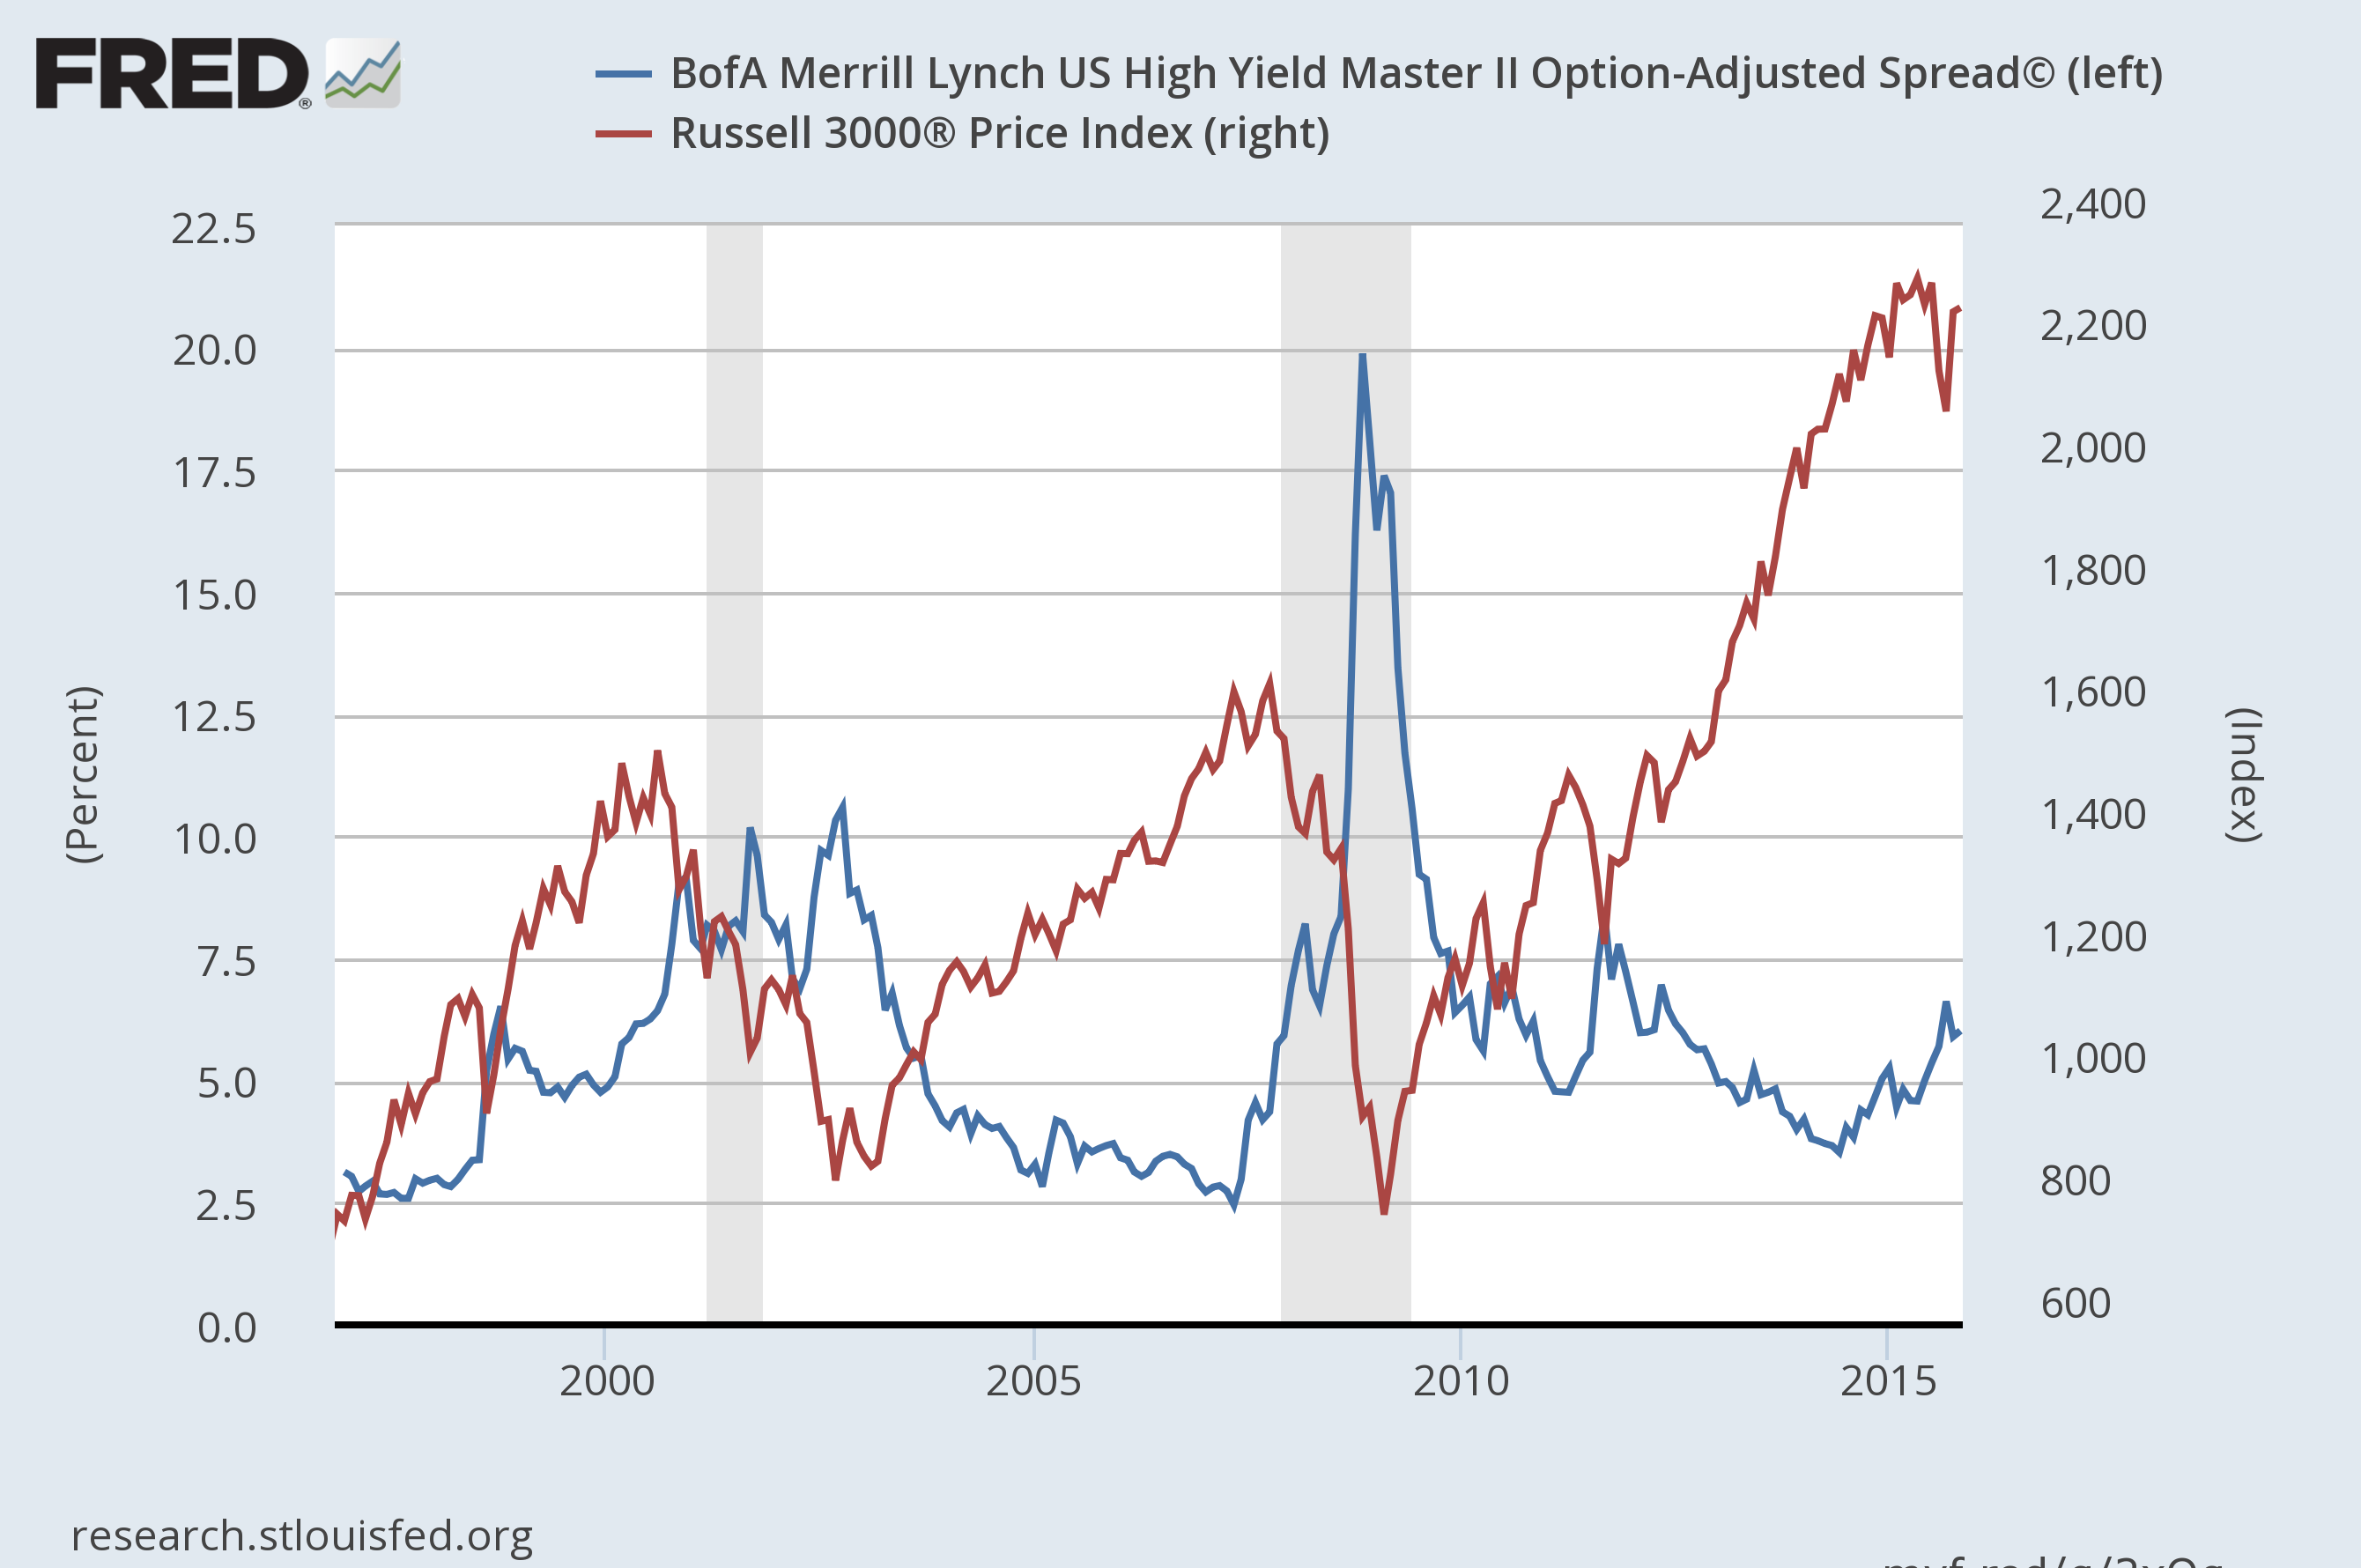 Stock Market Warning: Credit Spreads Are Widening Again | Seeking Alpha